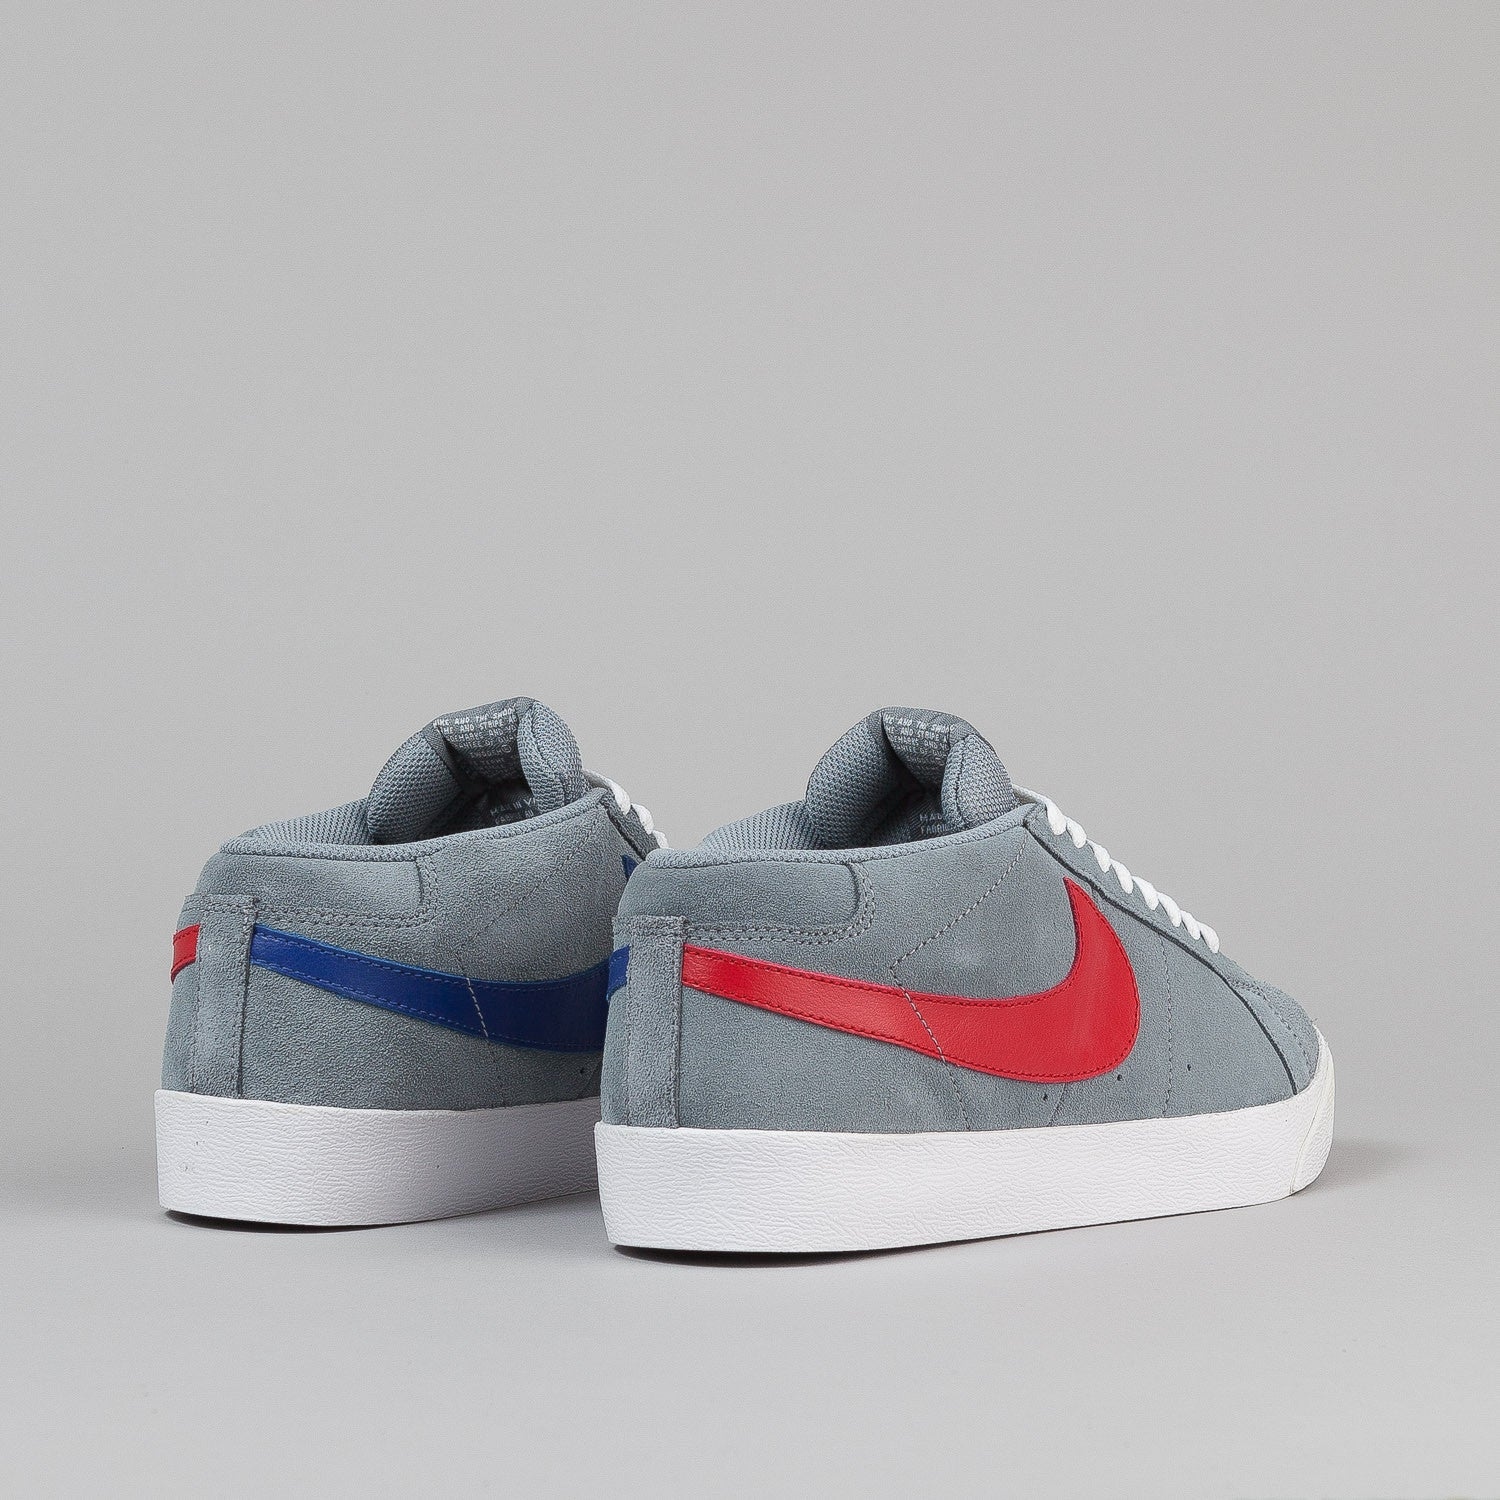 Nike SB Blazer CS Shoes - Union Grey / Varsity Red